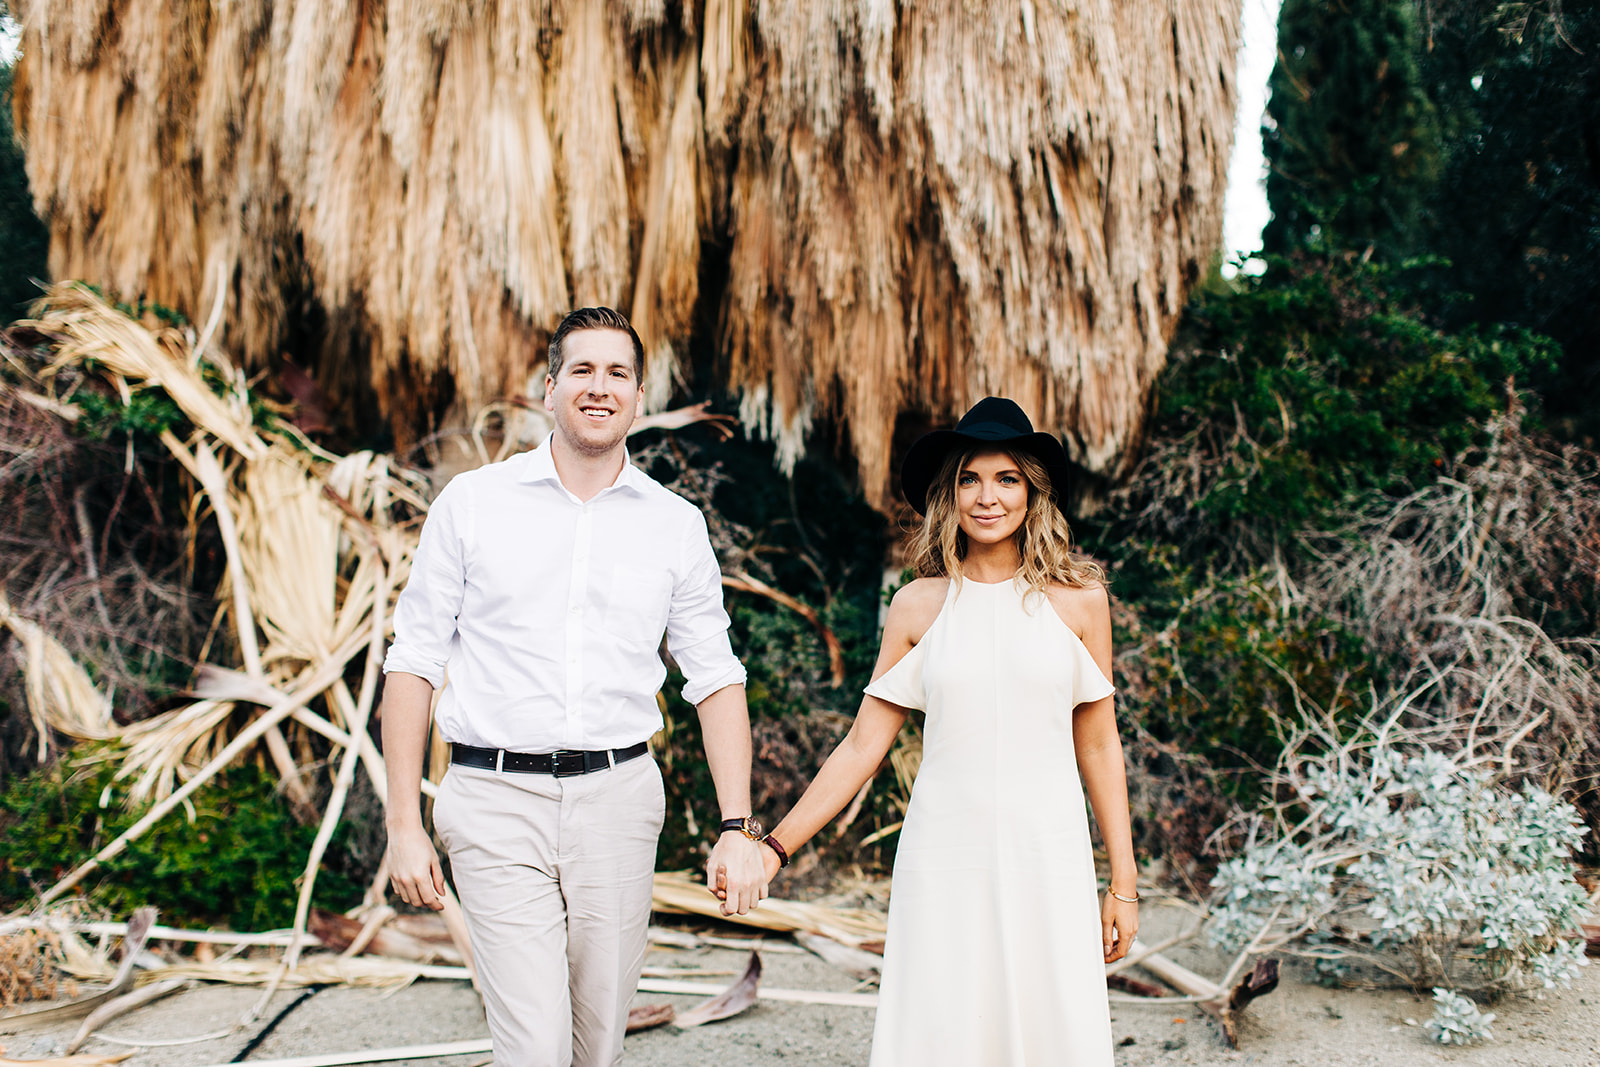 Paulina-Drew_Palm-Springs-Engagement-Photos_Clarisse-Rae_Southern-California-Wedding-Photographer-12